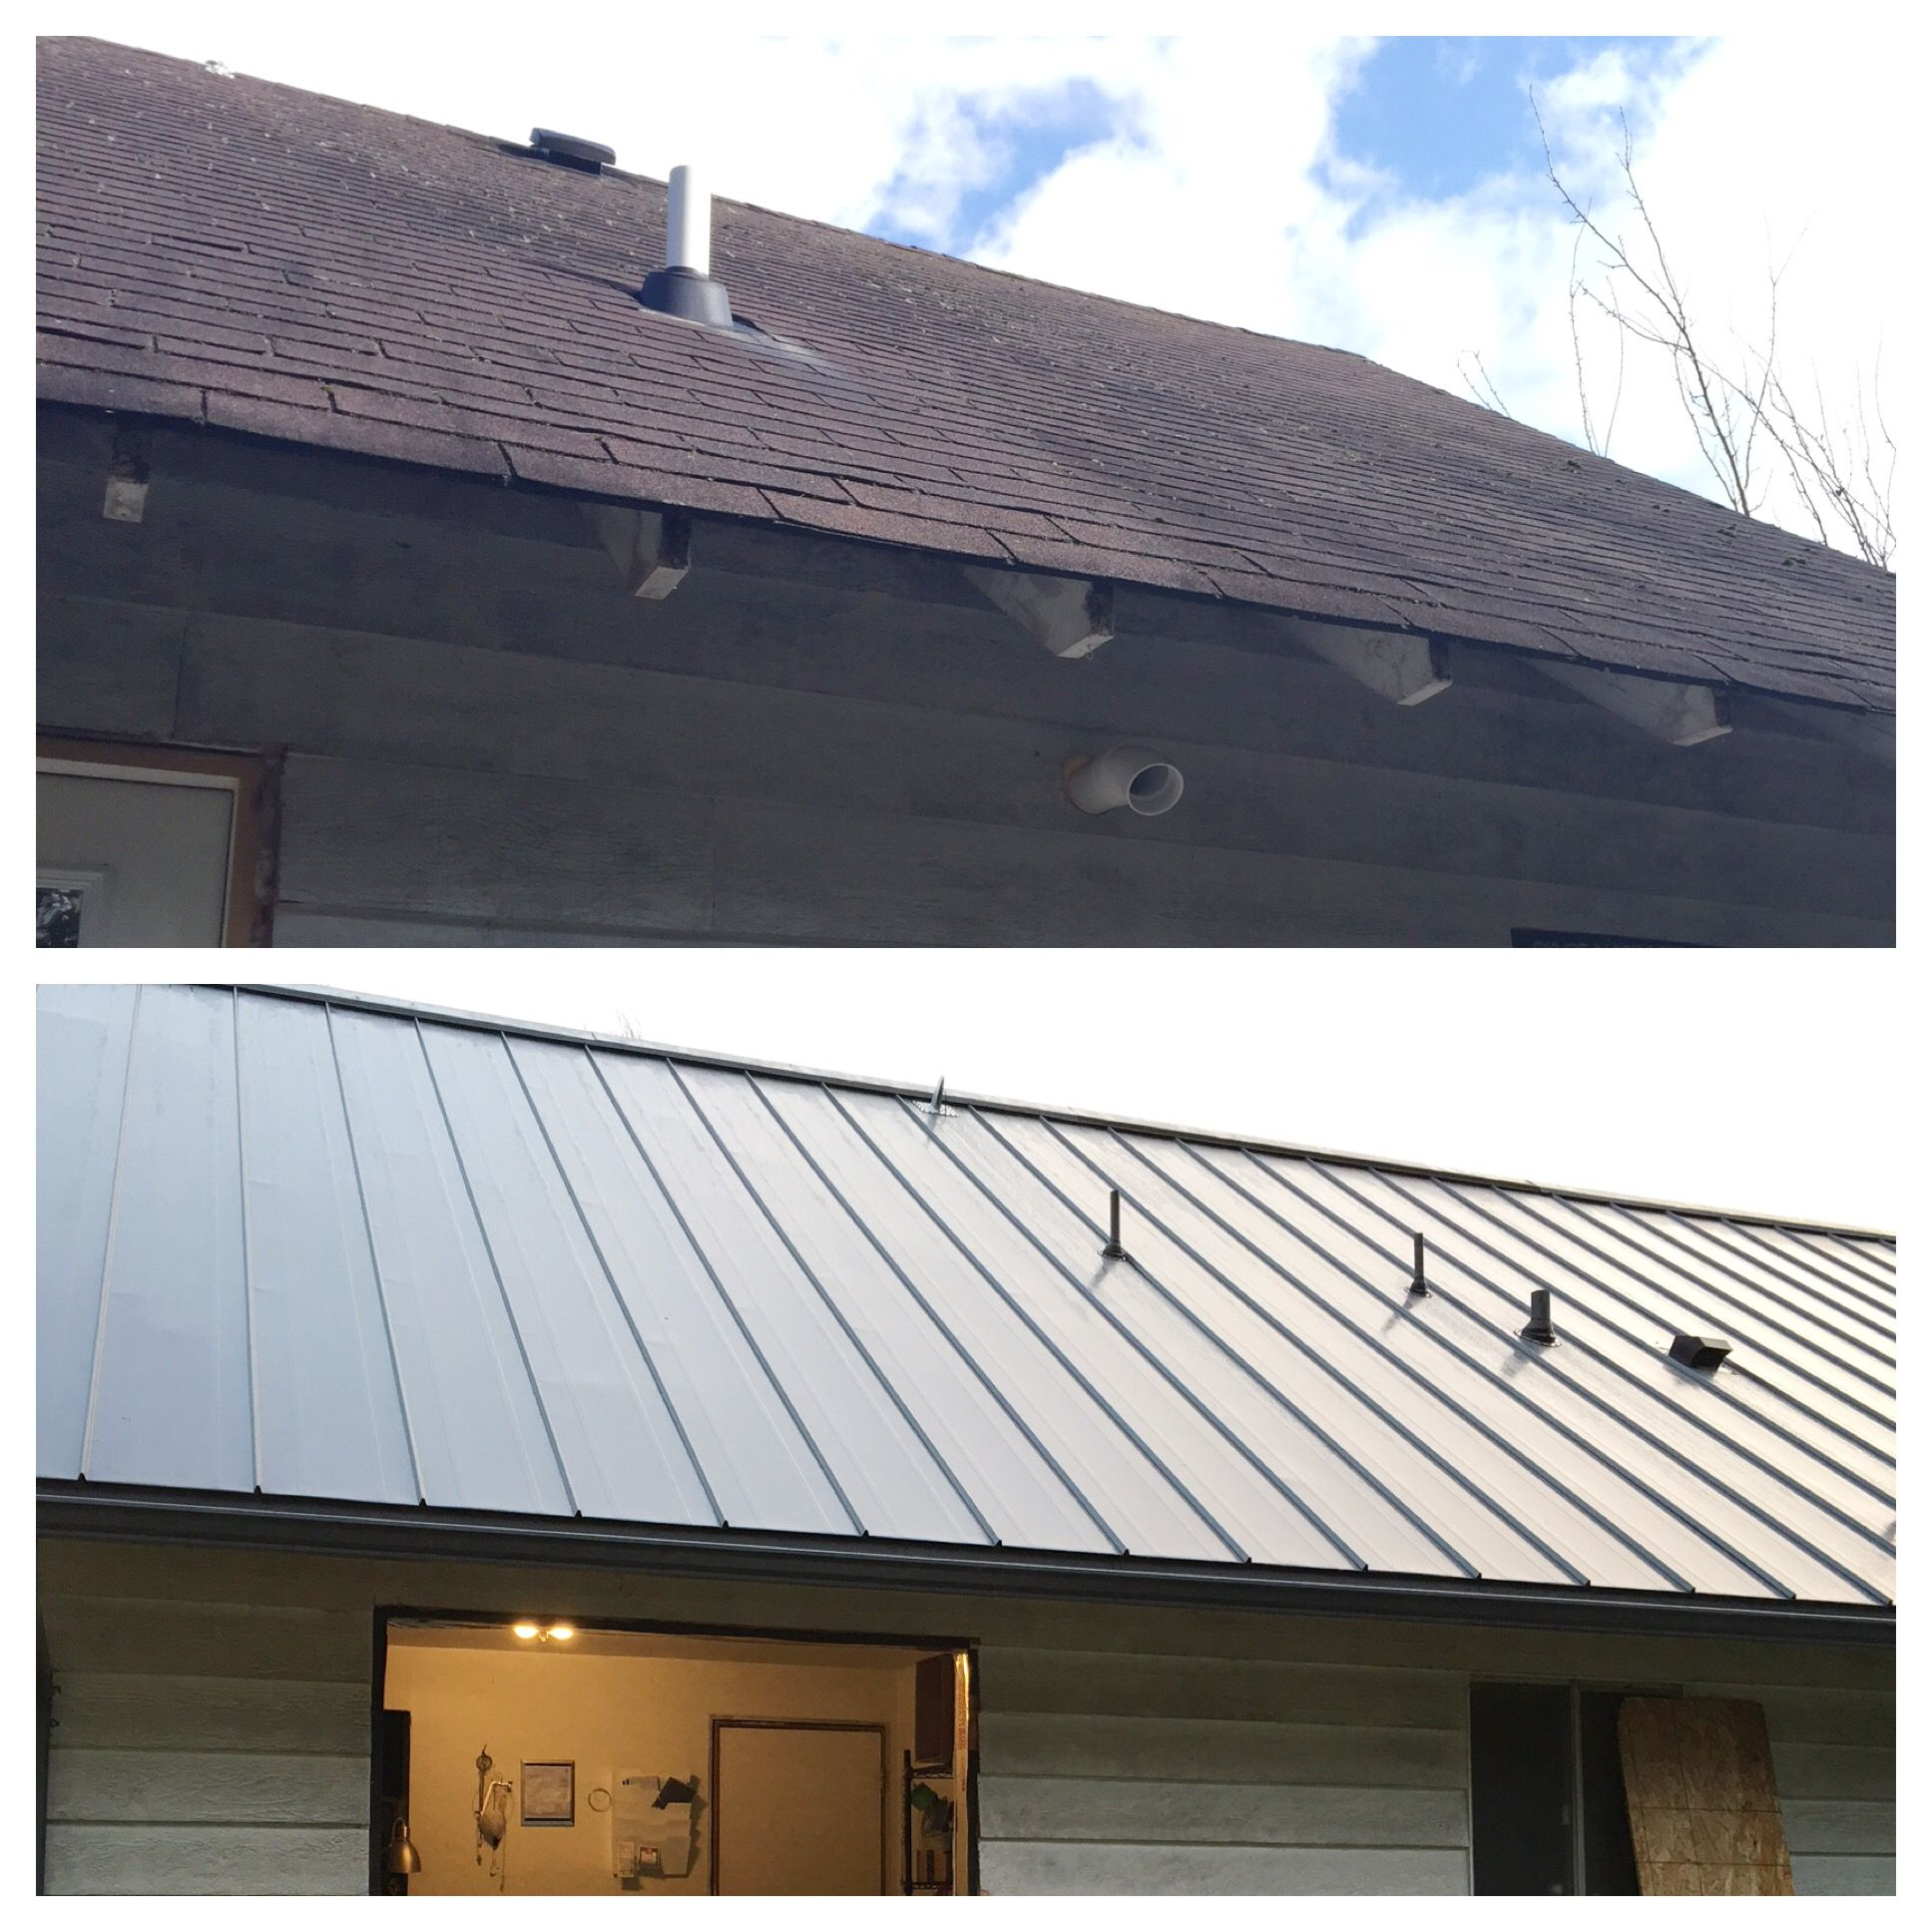 New Roof Storm Grey Flat Cb 150 Standing Seam With Pencil Ribs Custom Bilt Metals Standing Seam Concealed Fastener Panel System Avail Fermette Maison Toiture